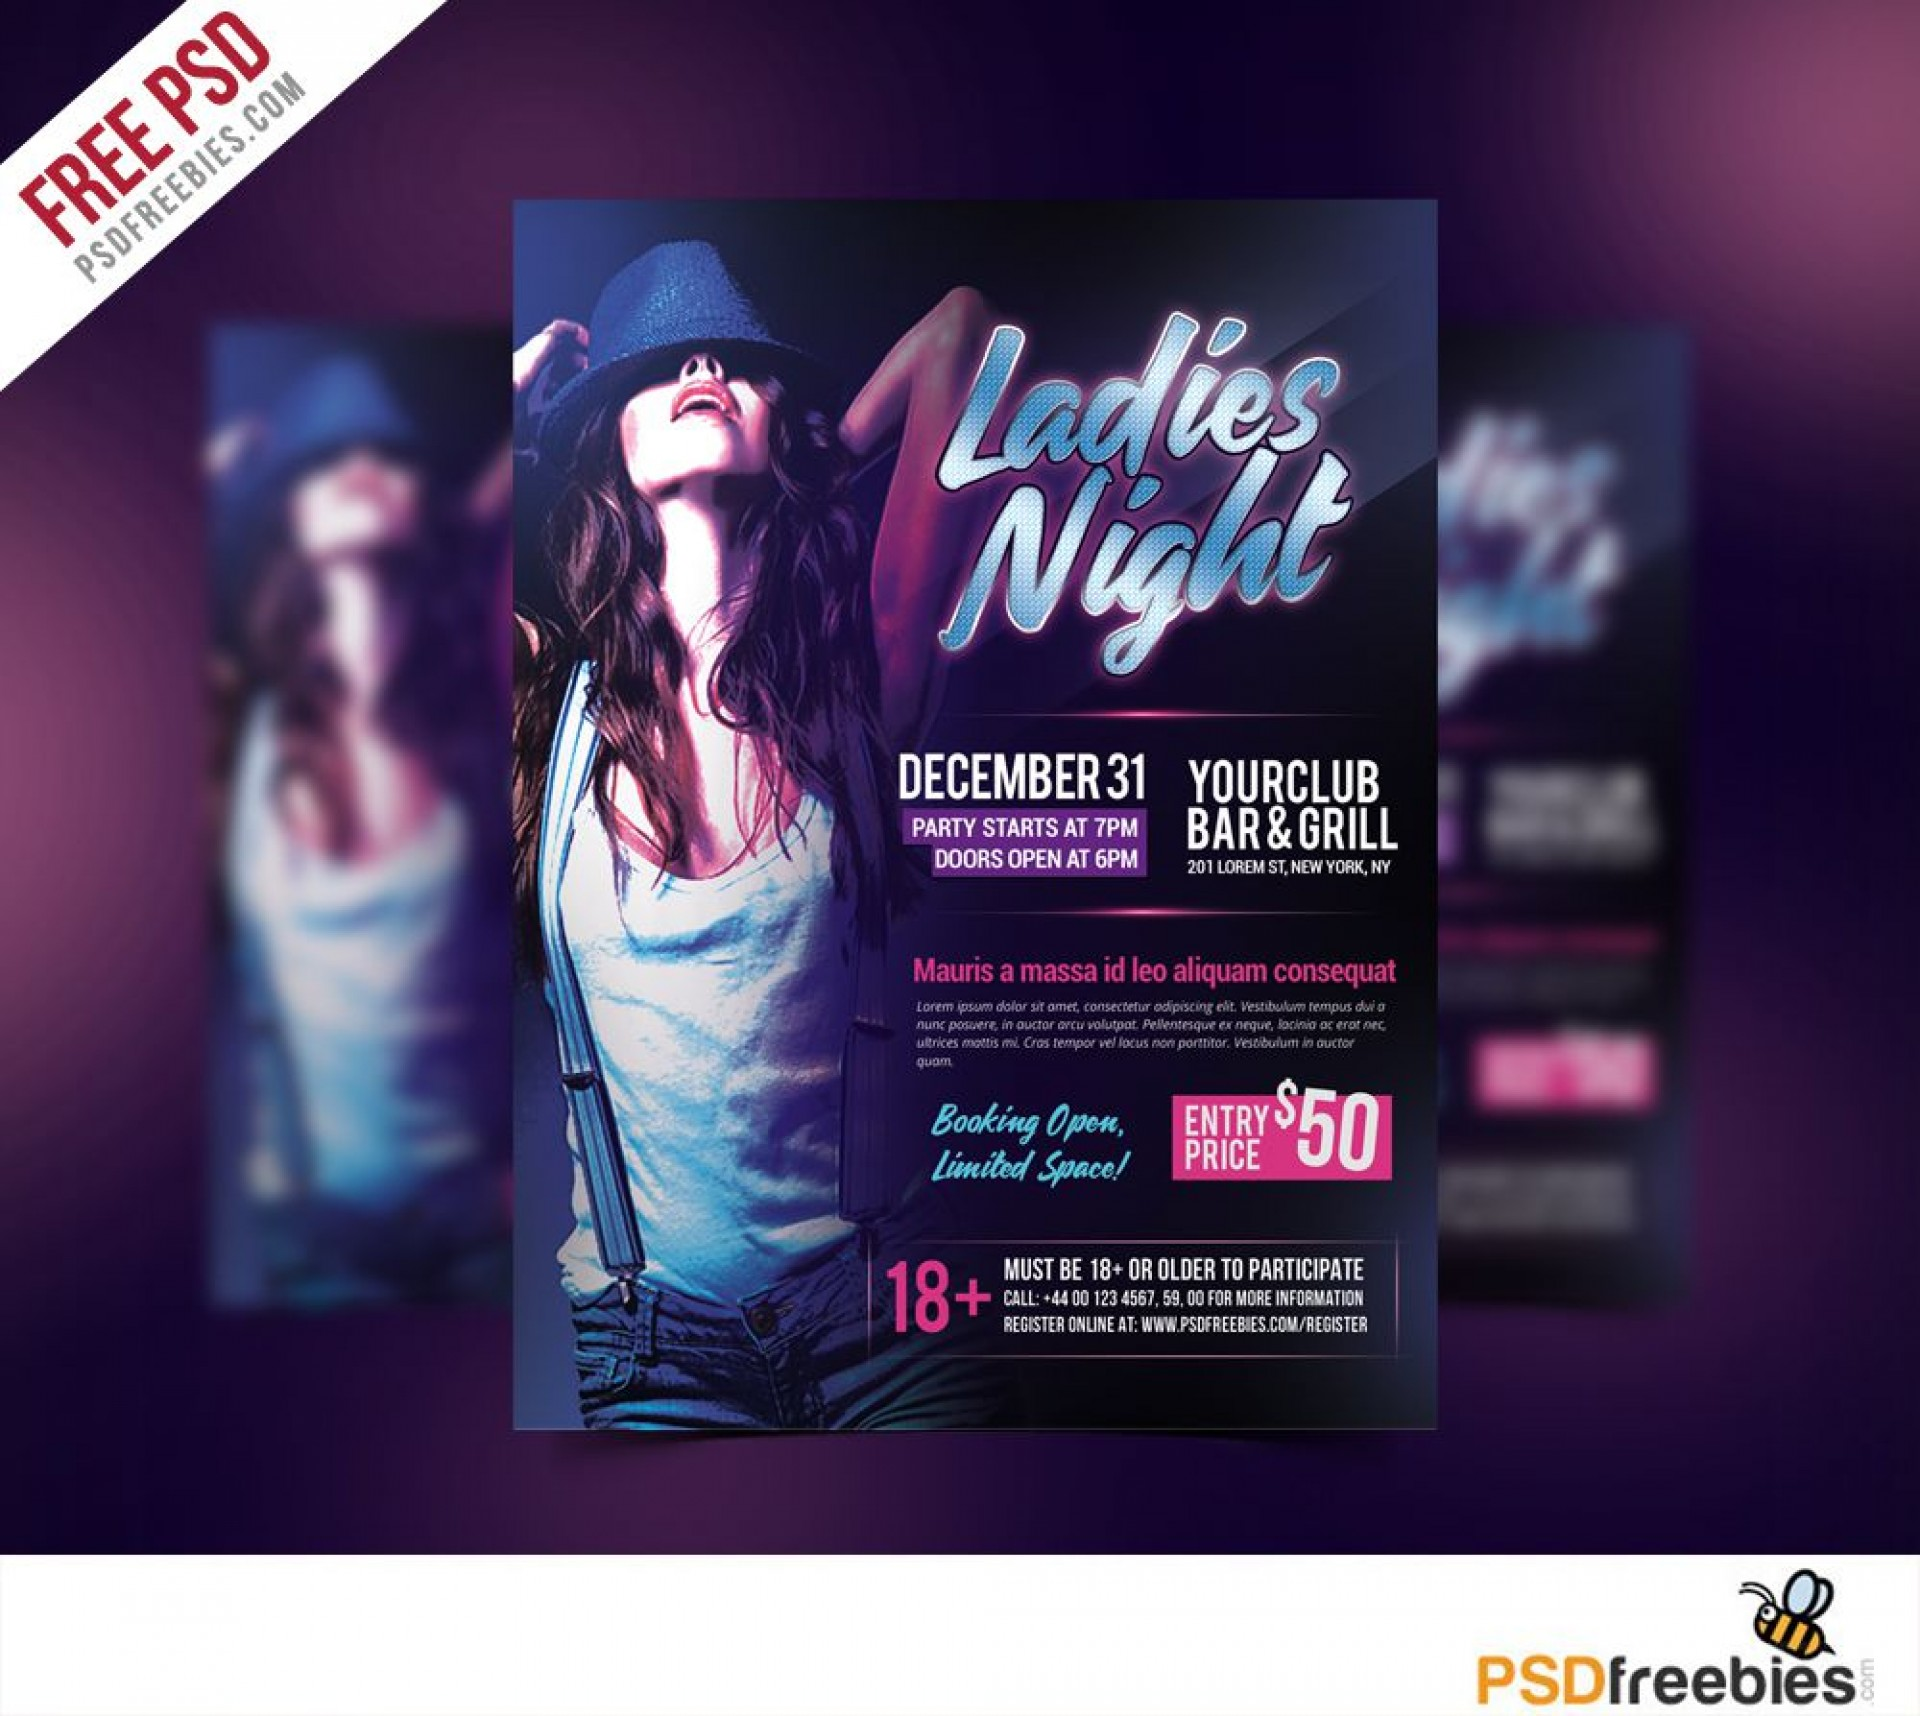 005 Staggering Party Flyer Template Free High Def  - Photoshop Holiday Christma For Microsoft Word1920